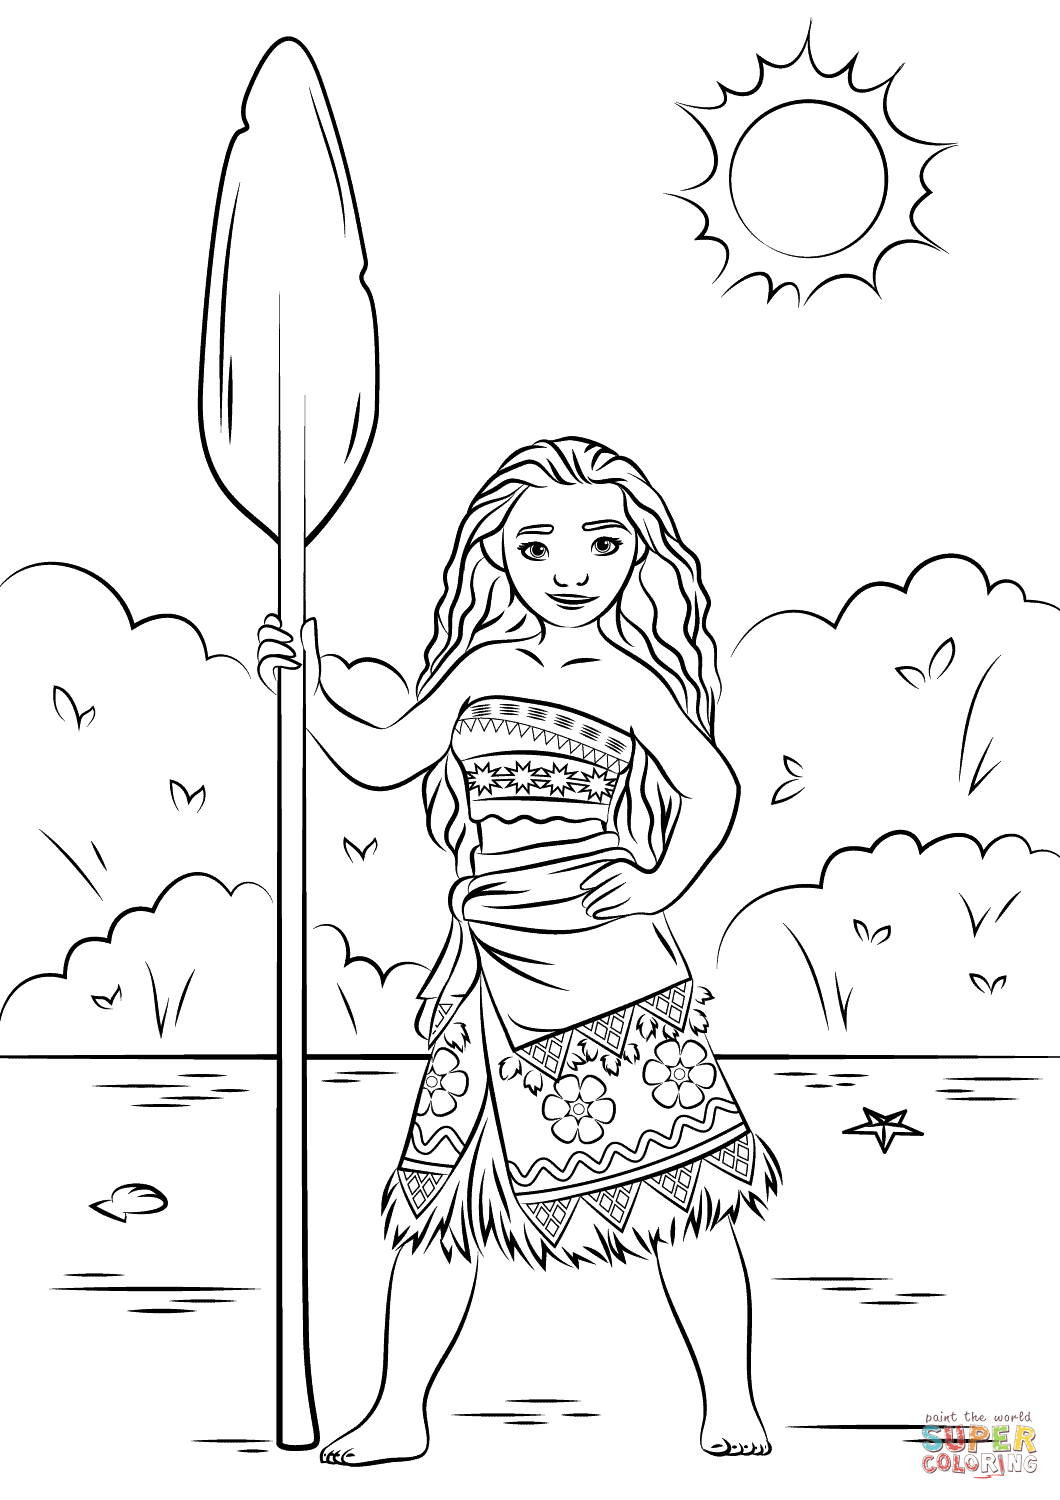 Princess Moana Super Coloring Disney Princess Coloring Pages Moana Coloring Pages Princess Coloring Pages